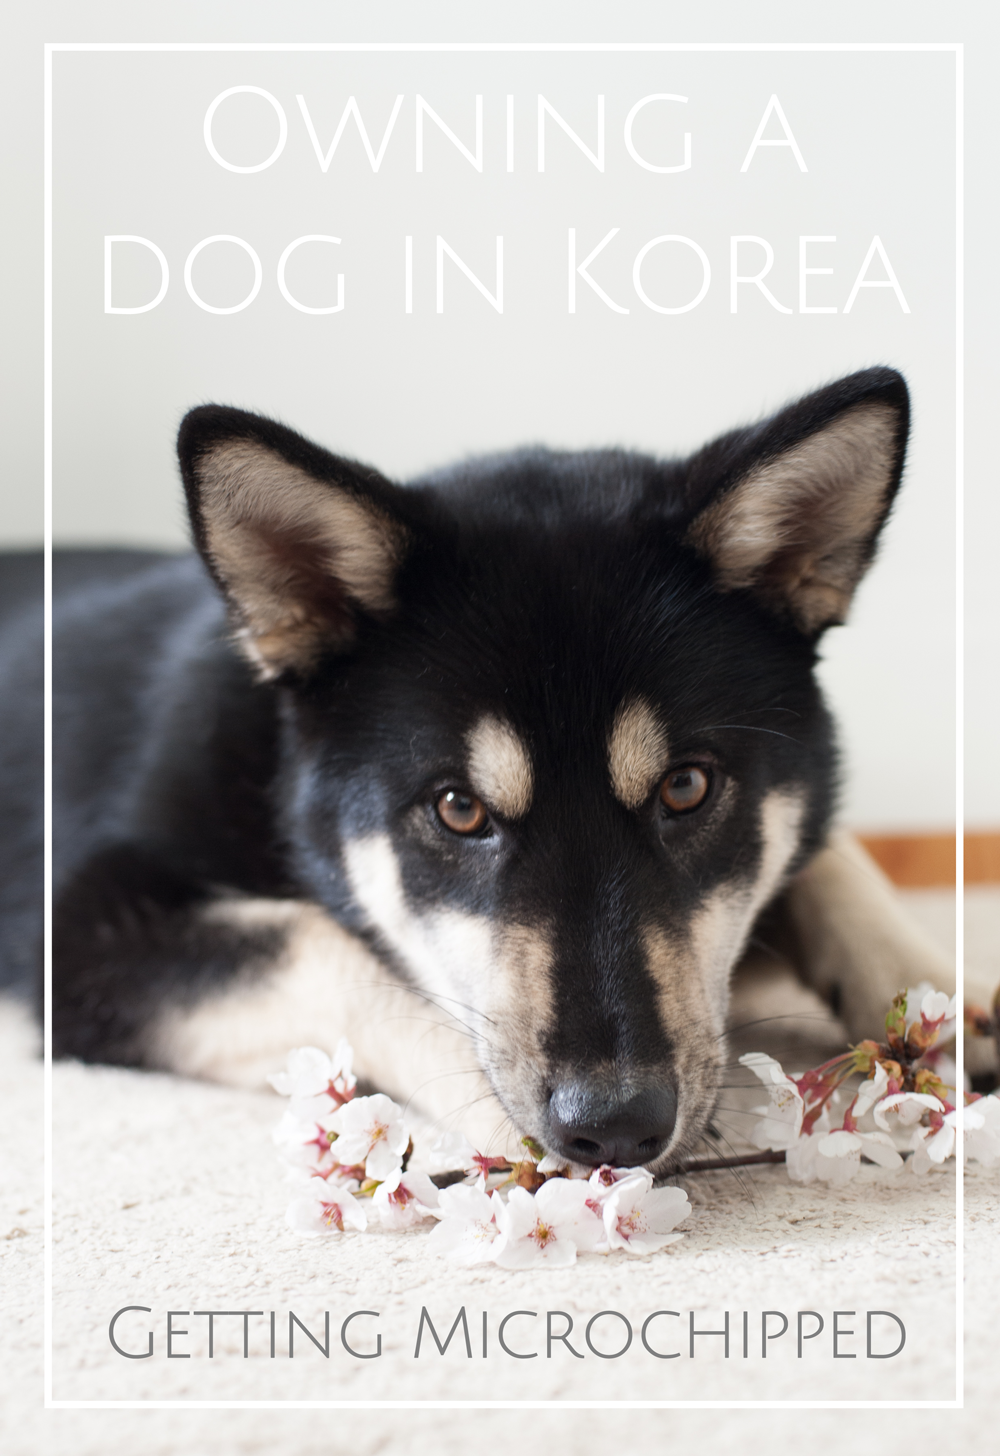 Microchipping dog in Korea